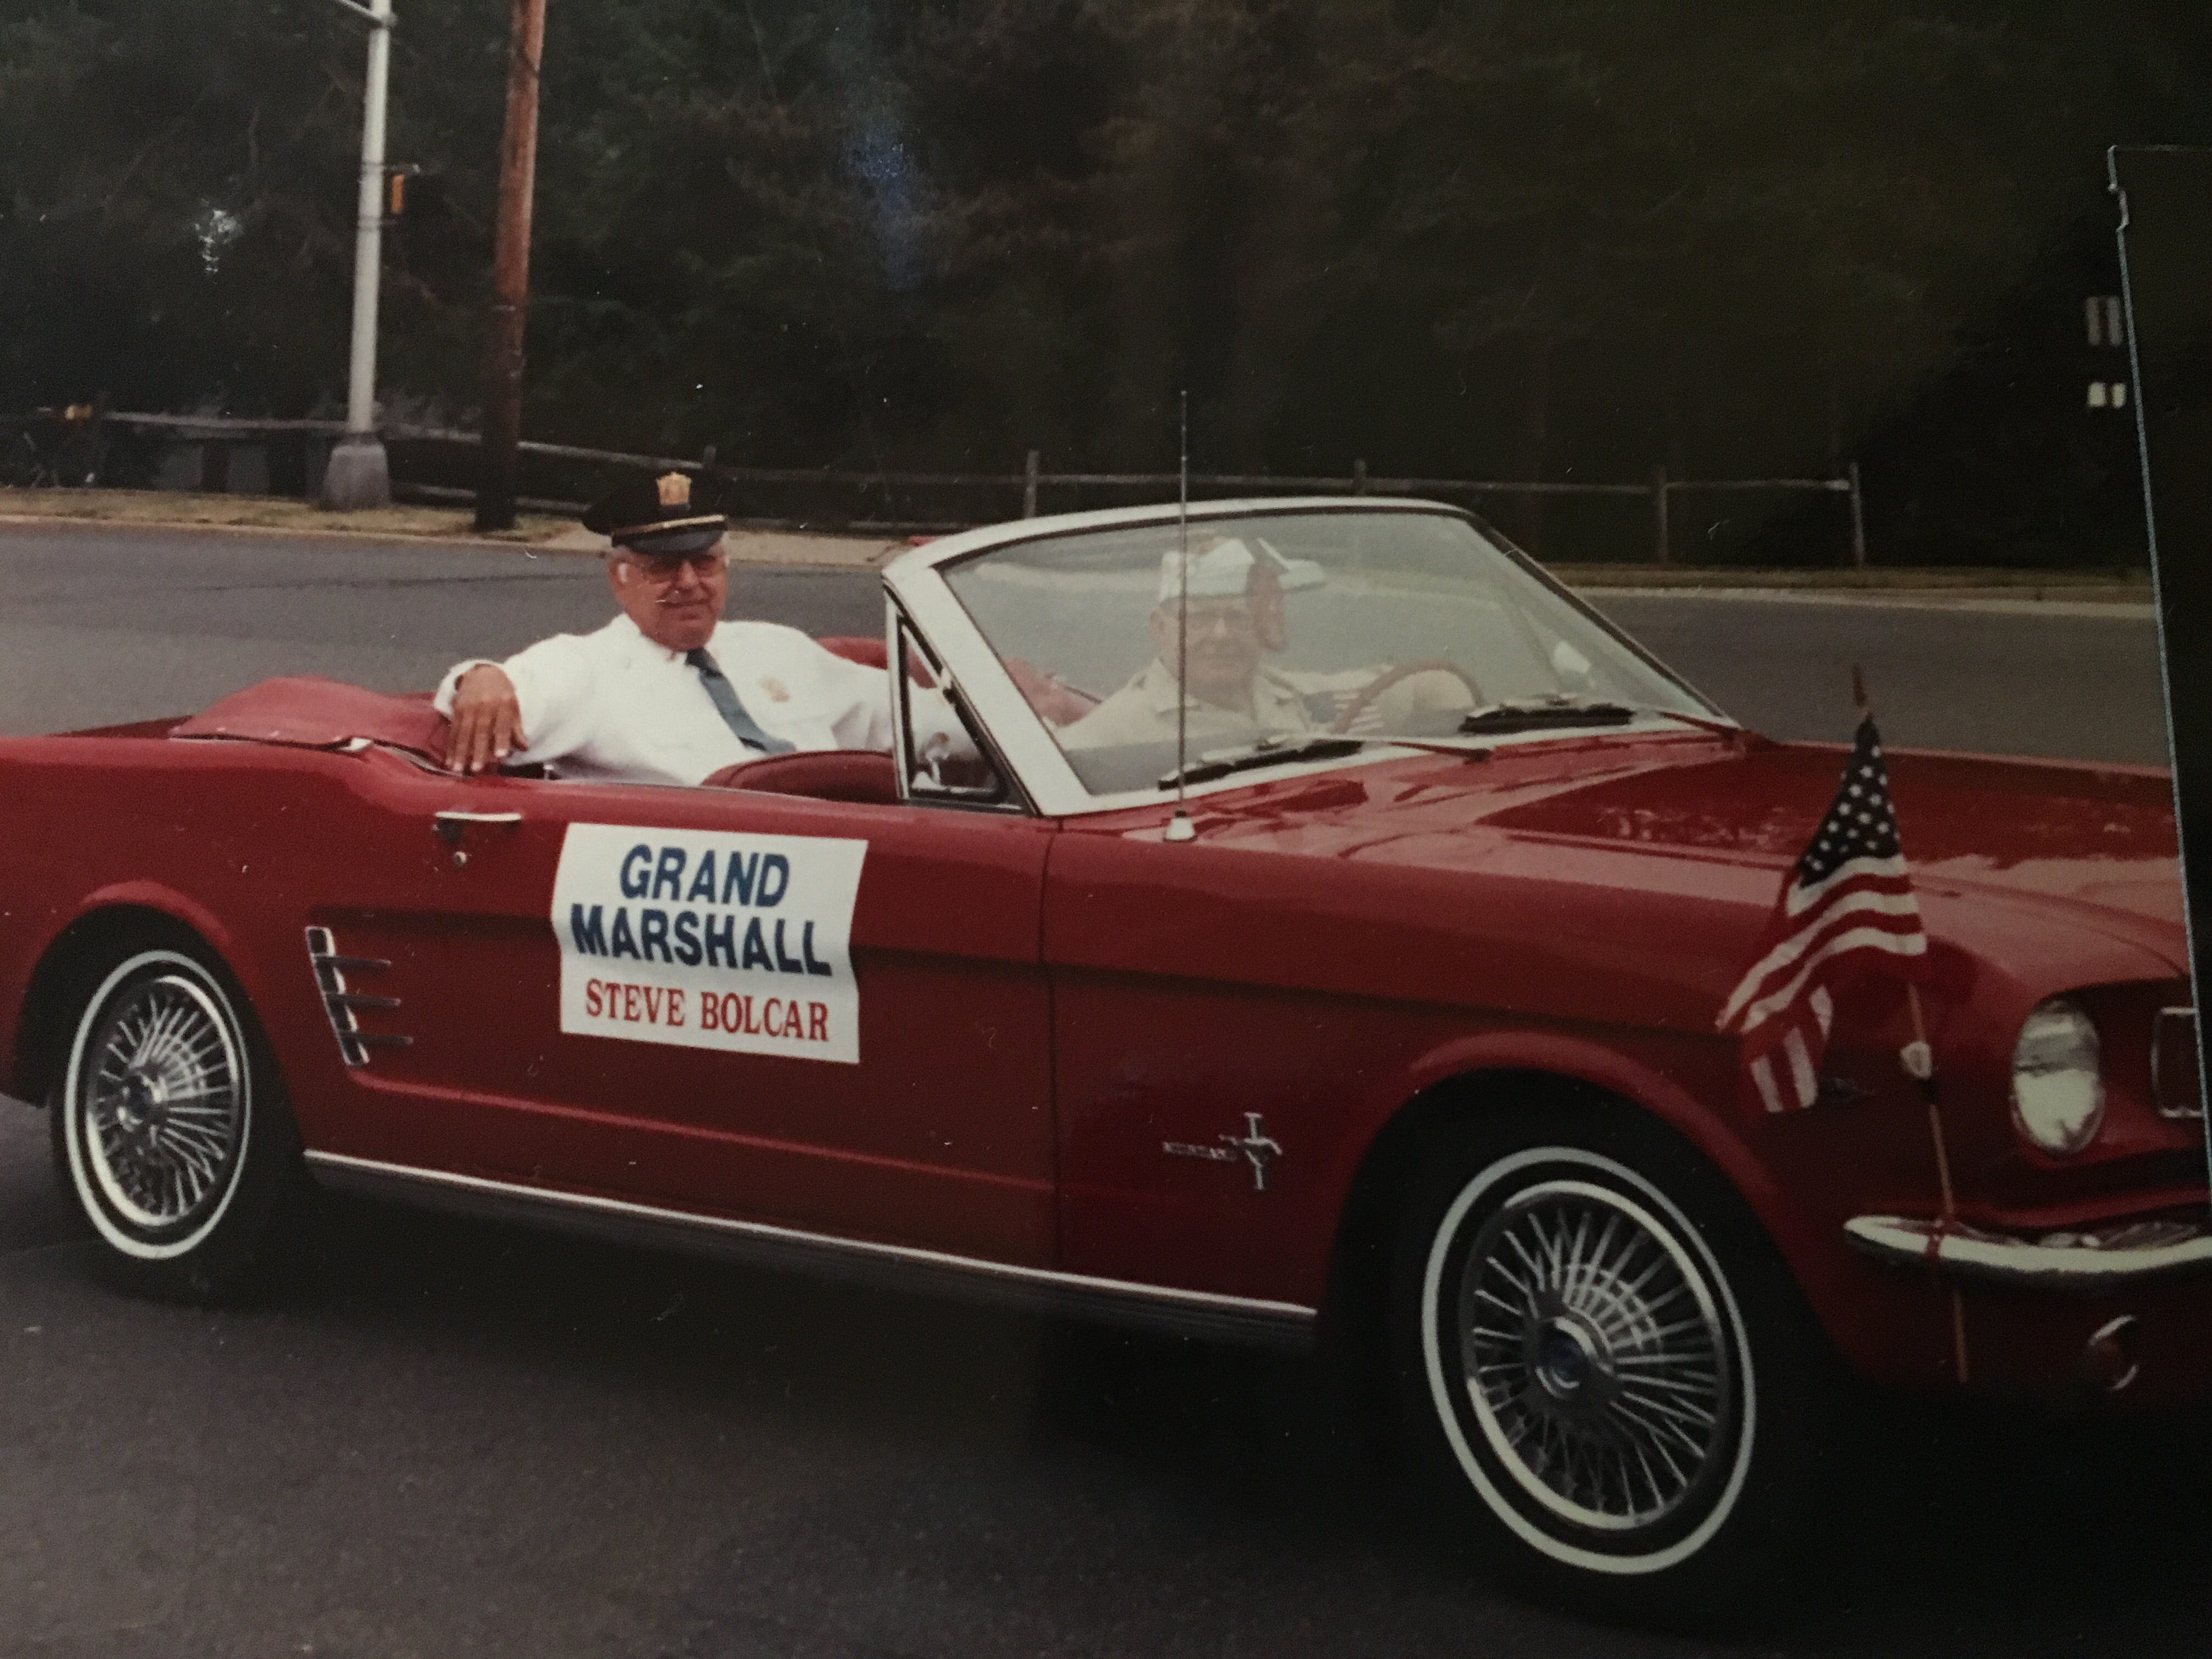 Steve Bolcar family photos: grand marshal of the Memorial Day parade, 1993.